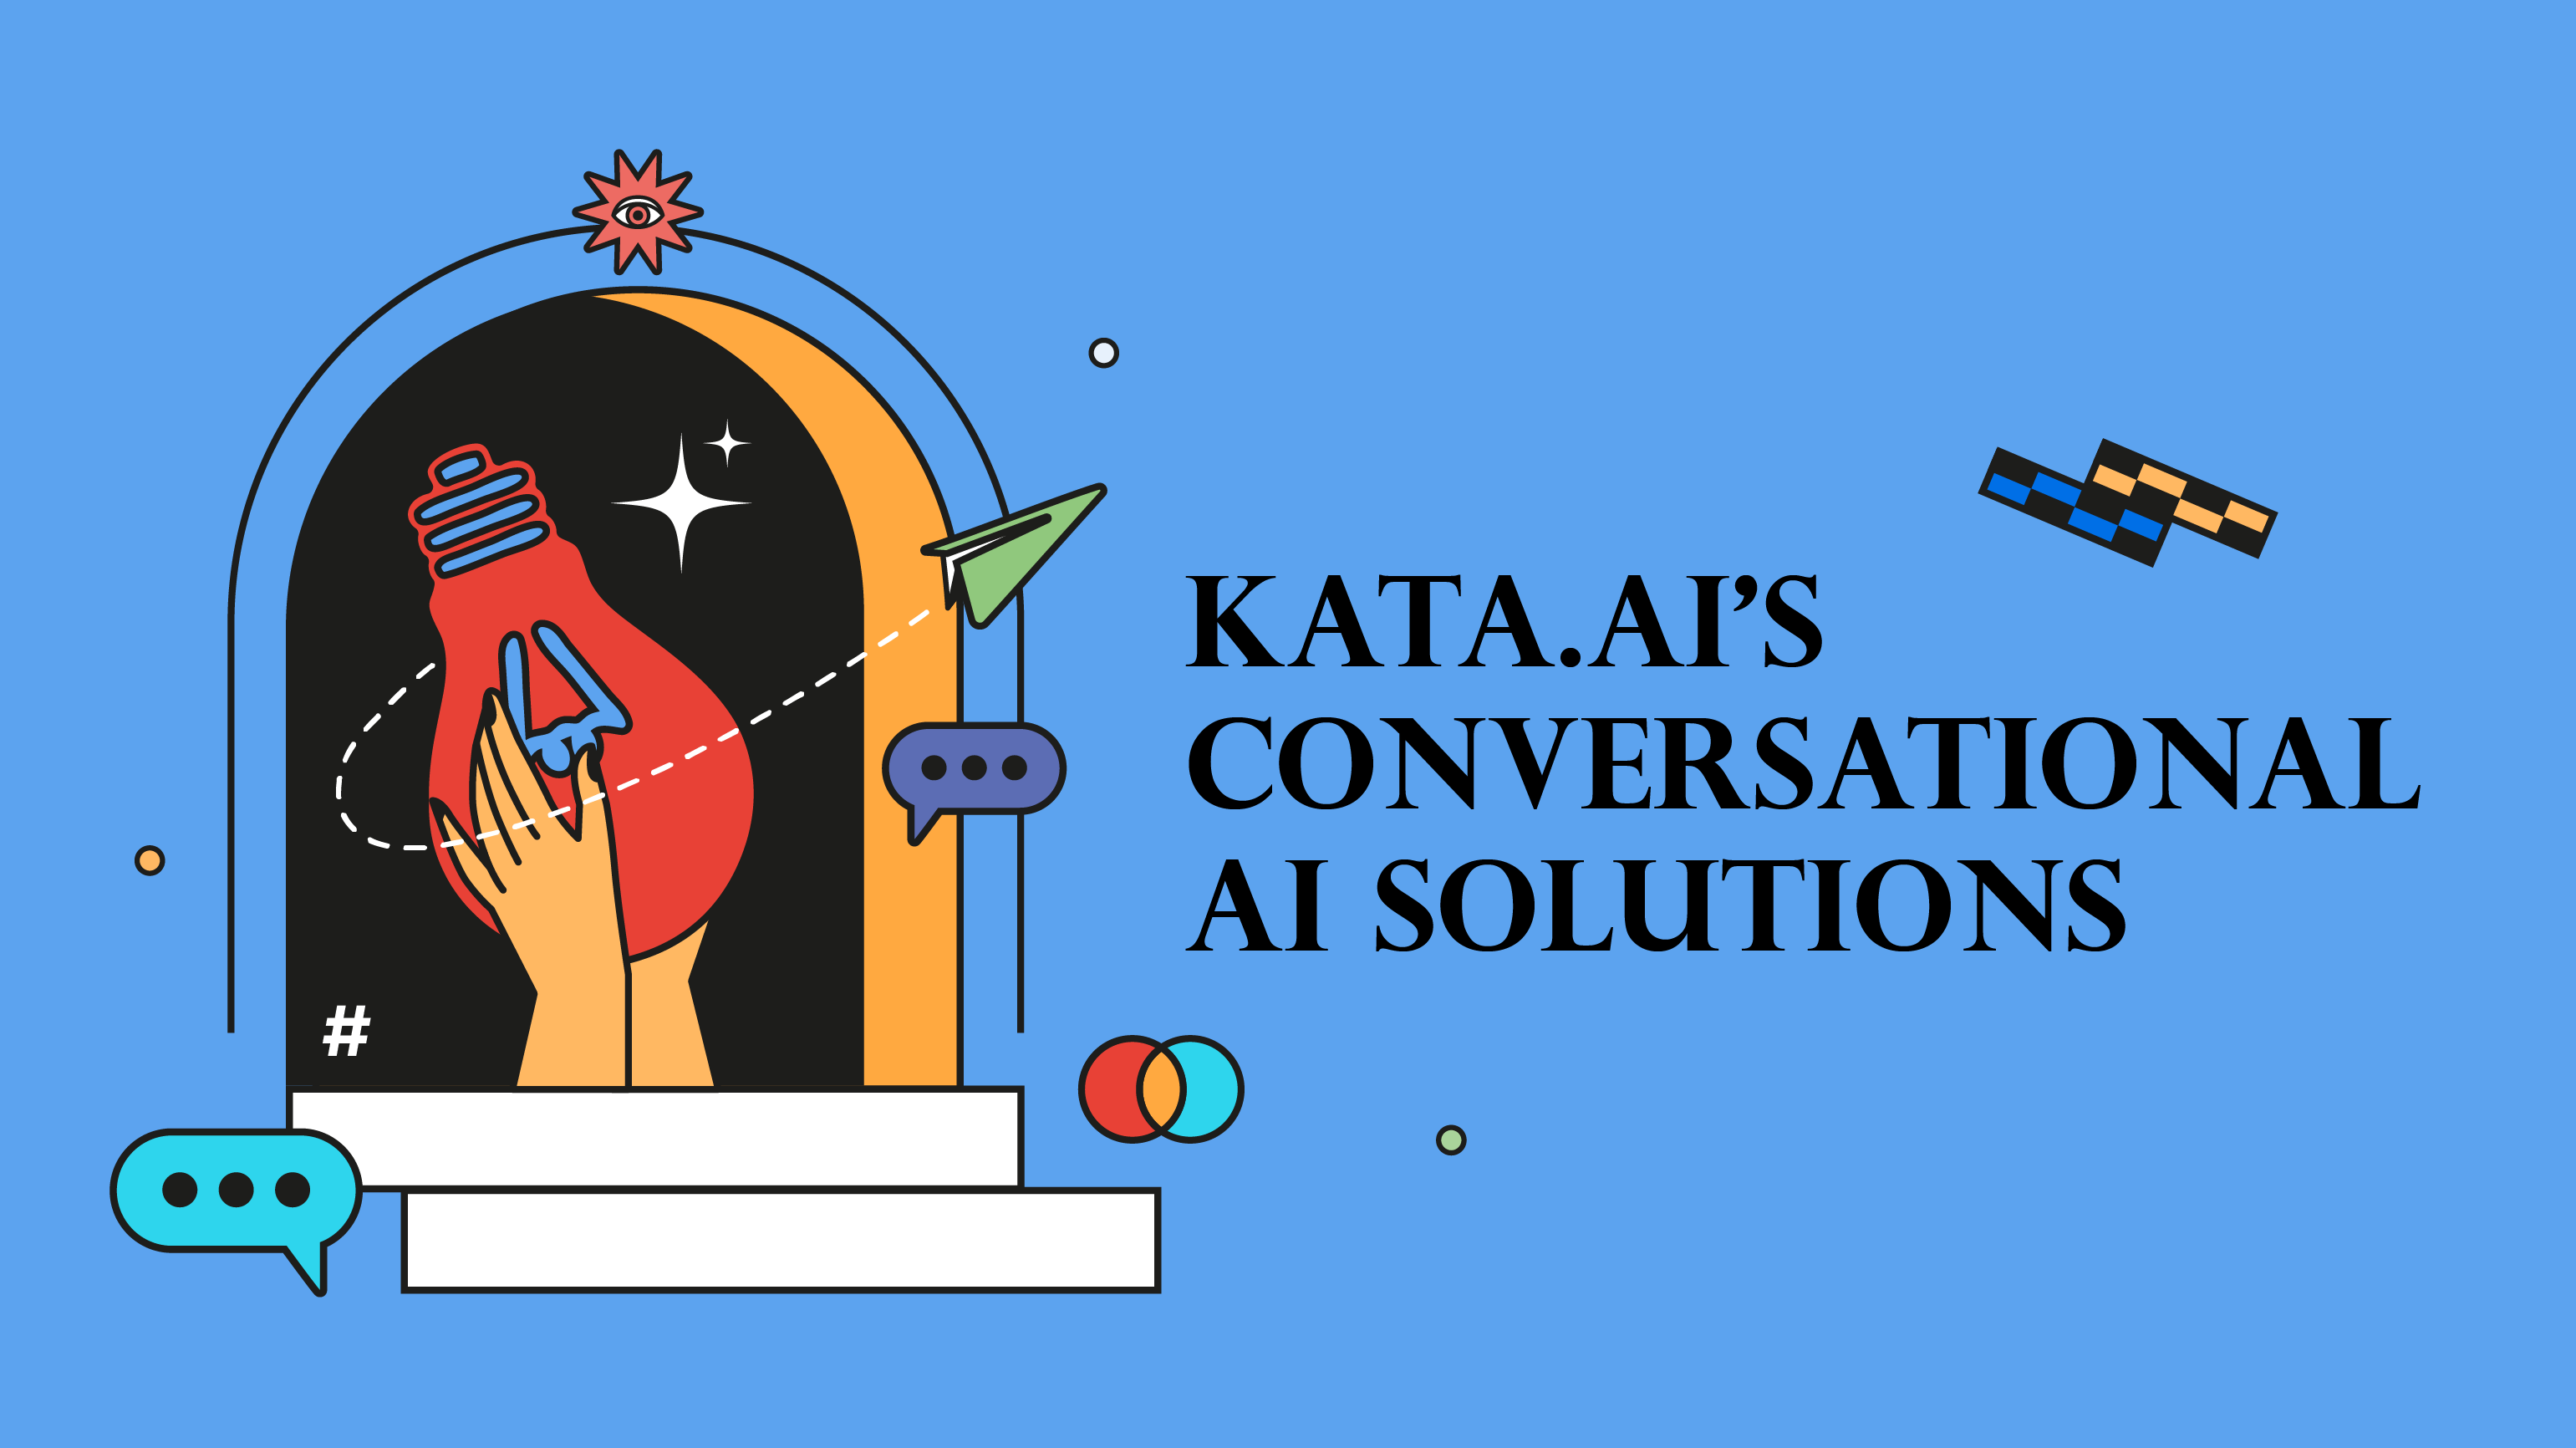 Get to know Kata.ai's conversational AI and chatbot solutions that took advantage of state-of-the-art natural language processing (NLP) technology in Bahasa Indonesia.